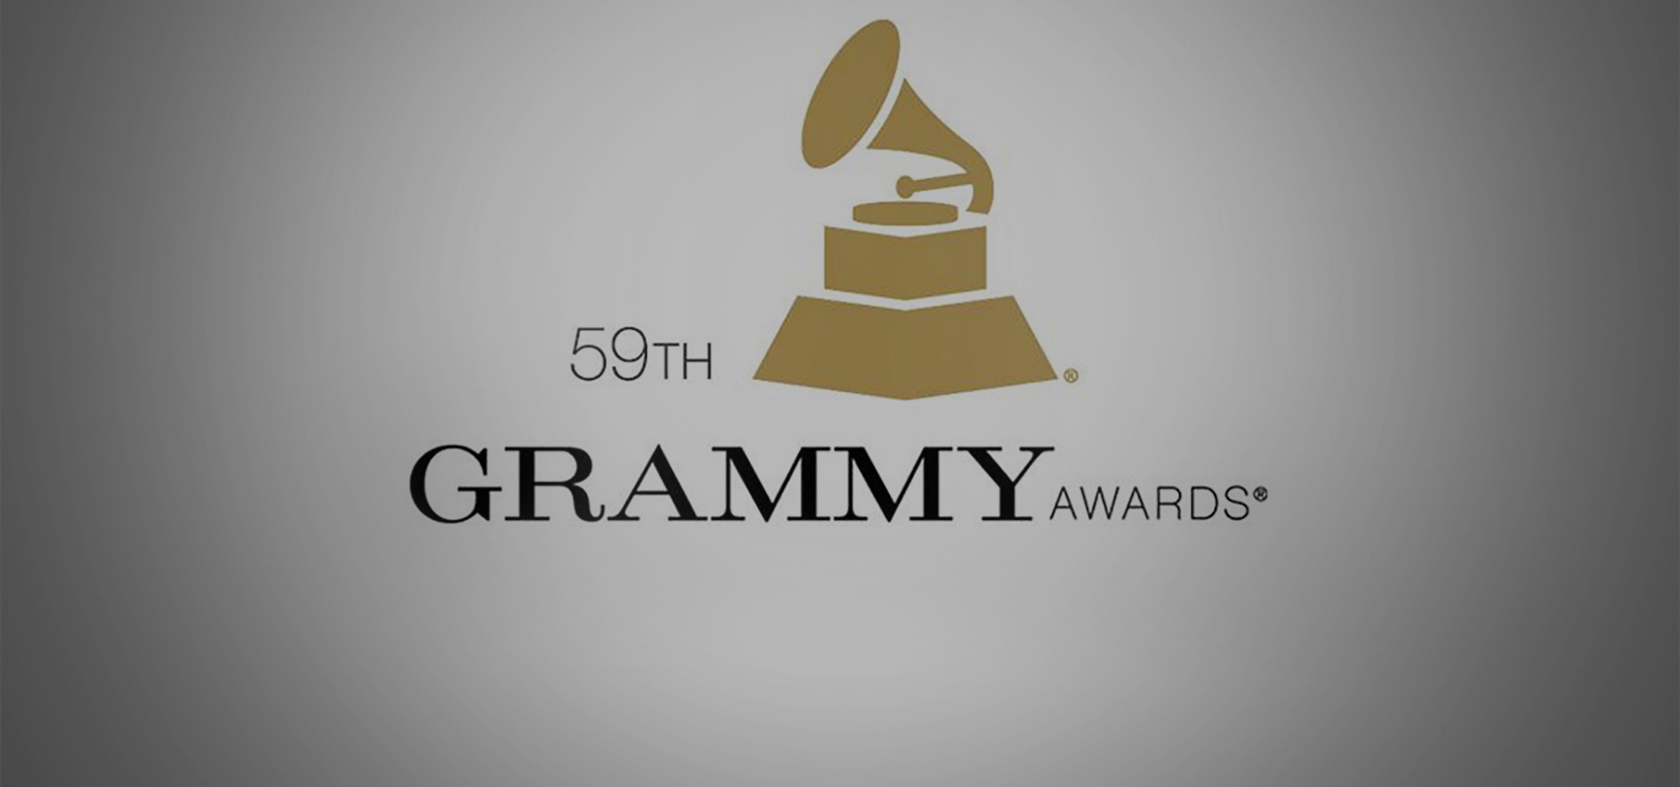 Vania Heymann and Romain Gavras Receive GRAMMY Nominations for Best Music Video and Kahlil Joseph for Best Music Film on grammy.com